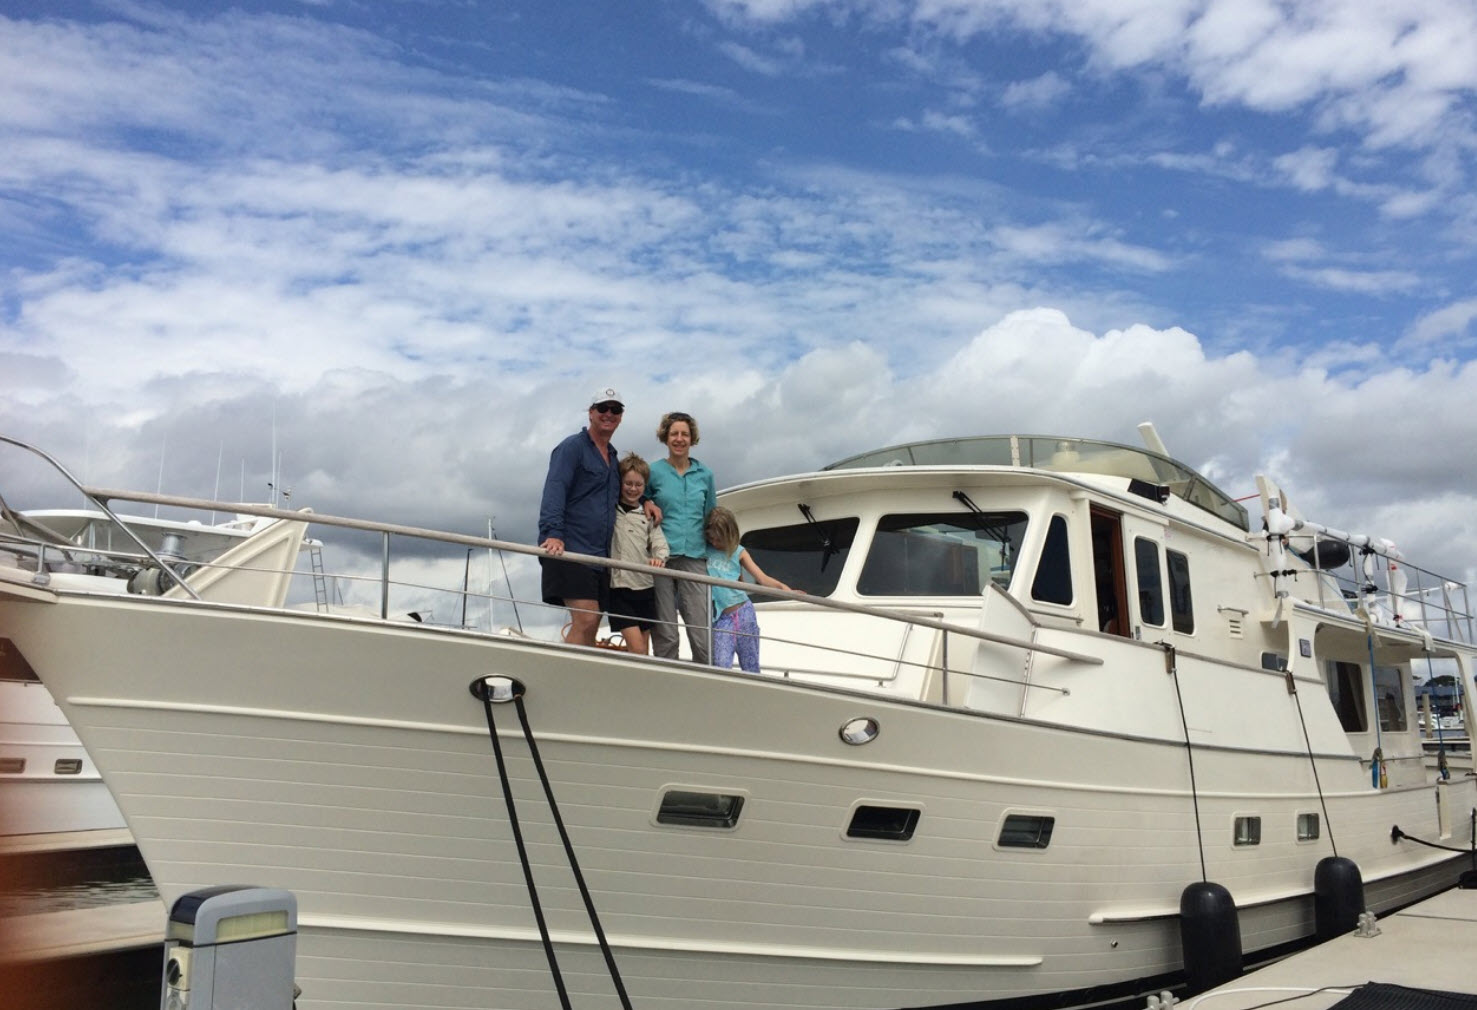 Fleming 65 Owners Of Hull 007 Talk About Their Boating Adventure